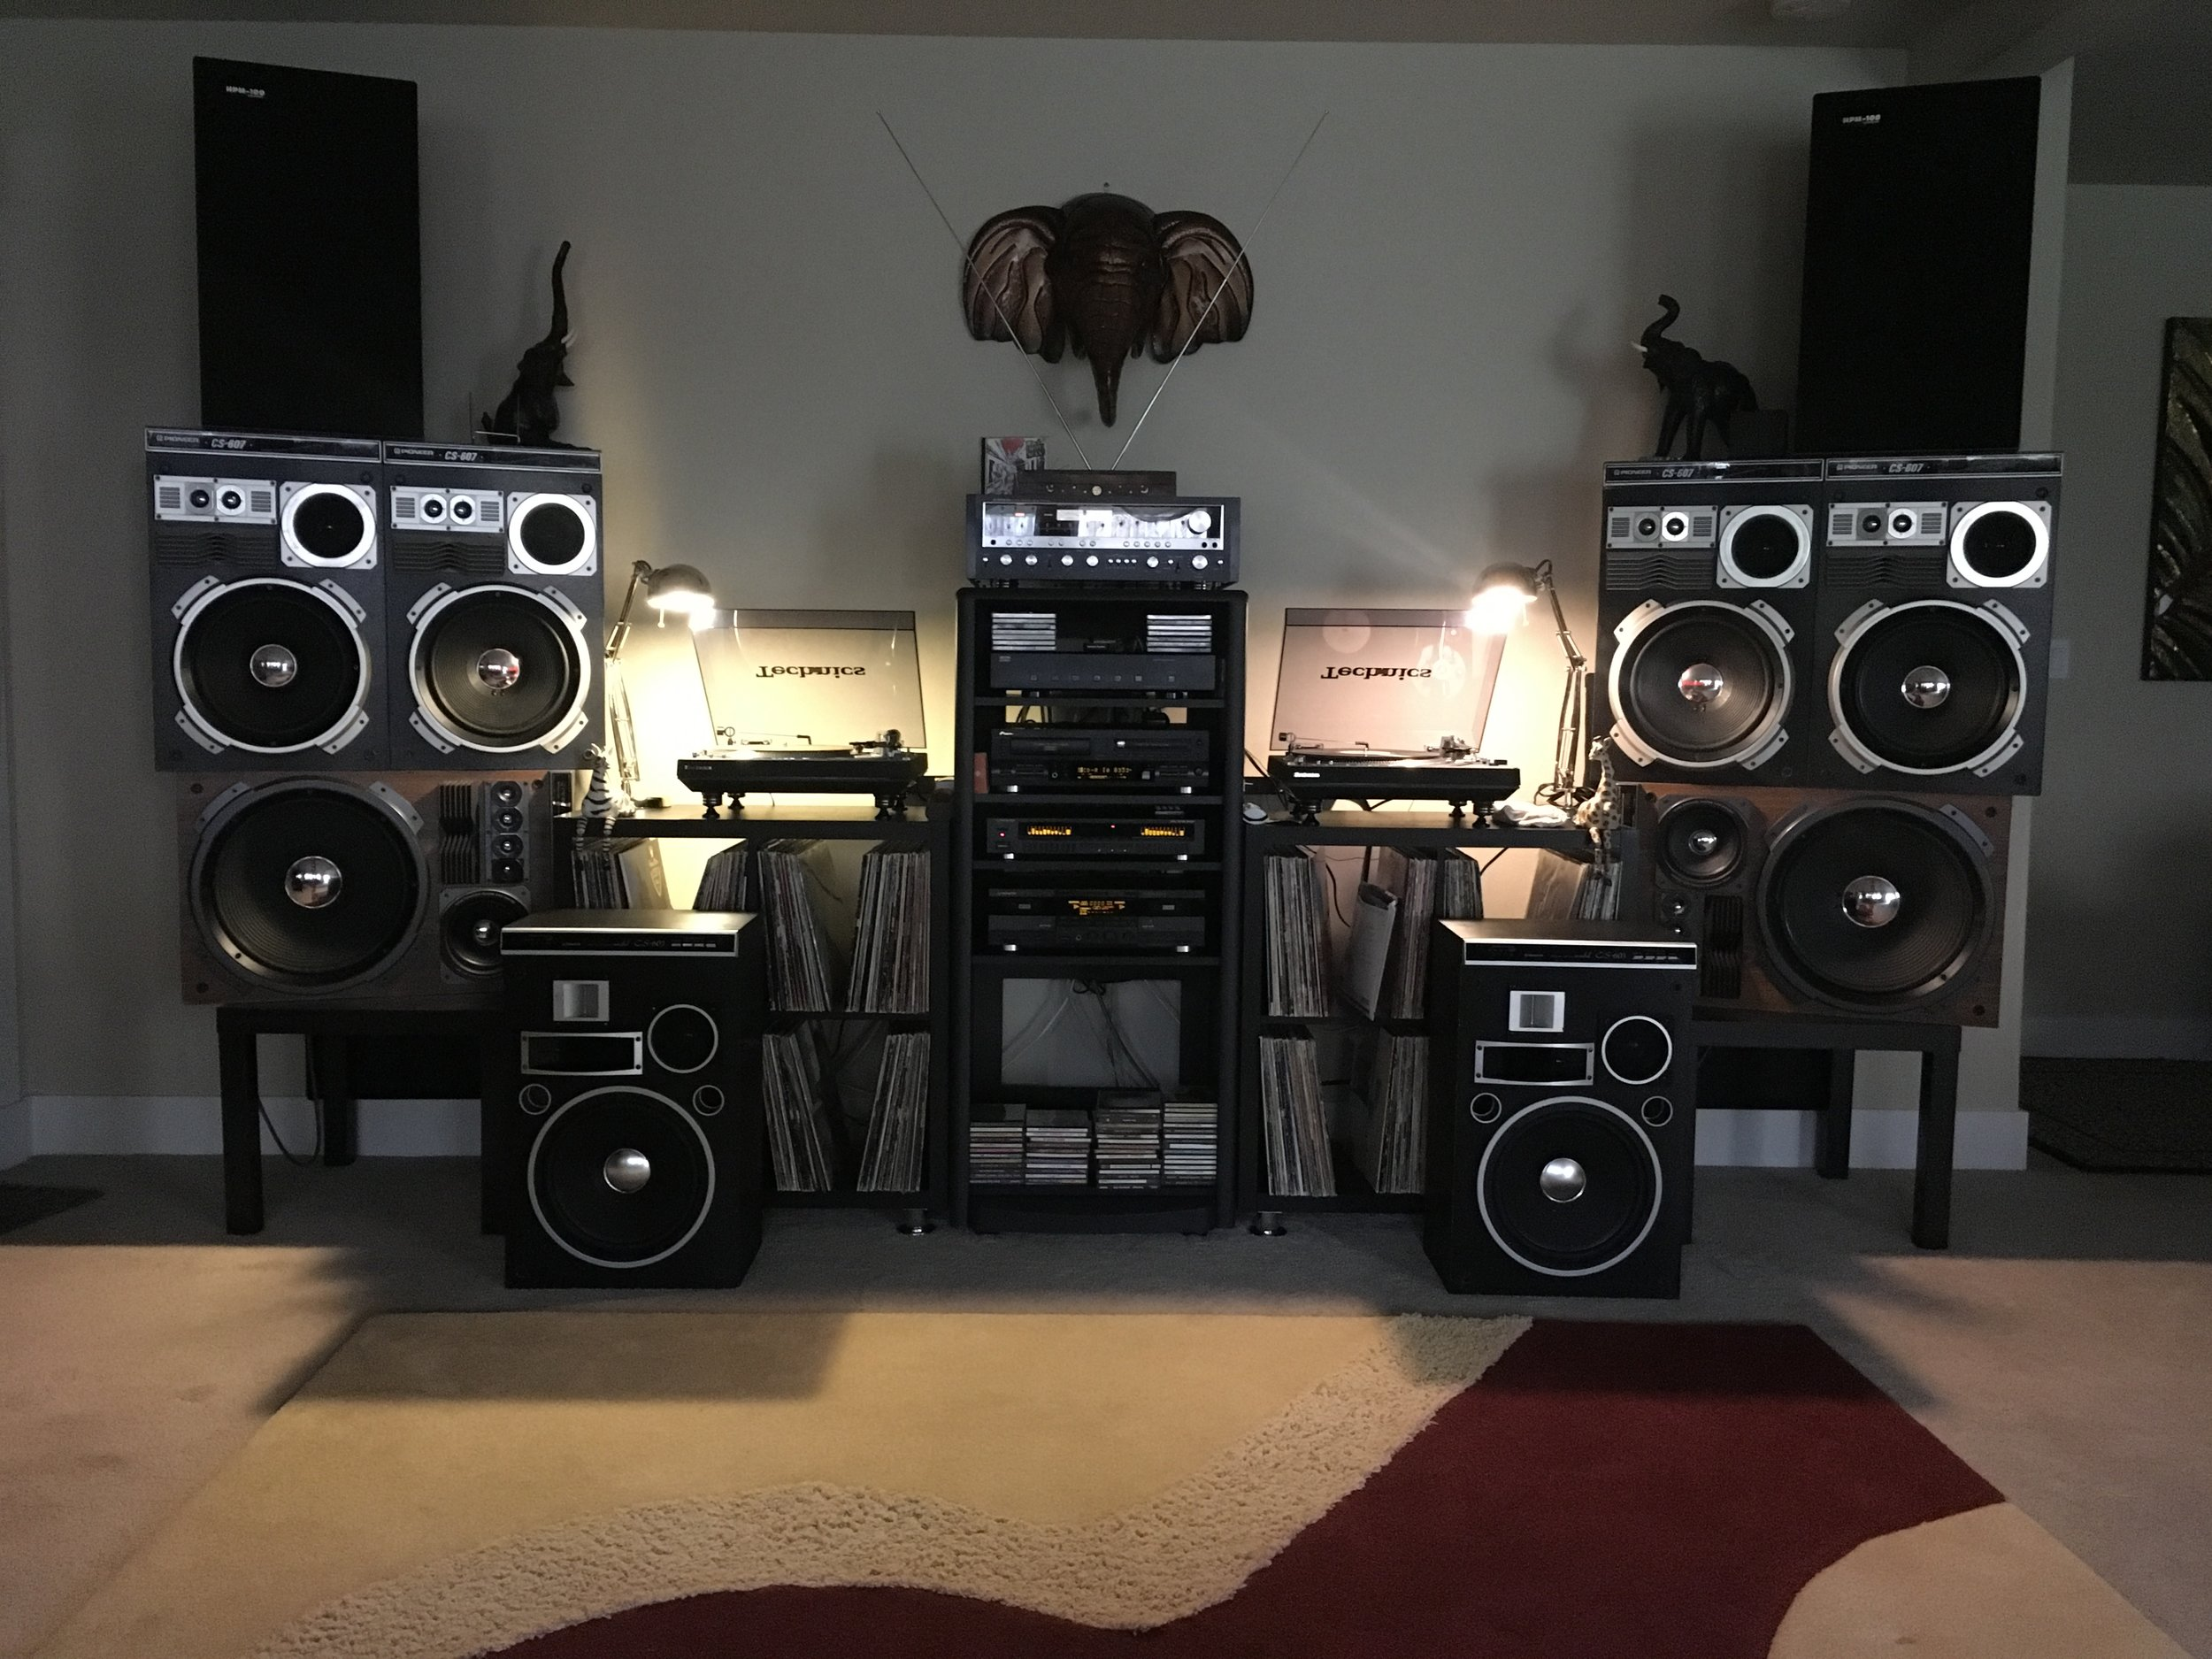 M-Perkins System! Pioneer SX 5580 Receiver Black Edition, Harman Kardon Bluetooth, Adcom GFS 6 Speaker Selector, Pioneer PDR W739 CDR RW Player, Pioneer GR - 777 Graphic Equalizer, Pioneer CT - W900R Duel Cassette Player, 1set Of Pioneer HPM 100 Speakers, 2 Sets Pioneer CS- 607 Speakers, 1 Set Pioneer CS-907A Speakers, 1 Set Pioneer CS-603 Speakers (Floor), 2 Technics SL 1300 Turntables. That is sweet. Hashtag: Elephants.